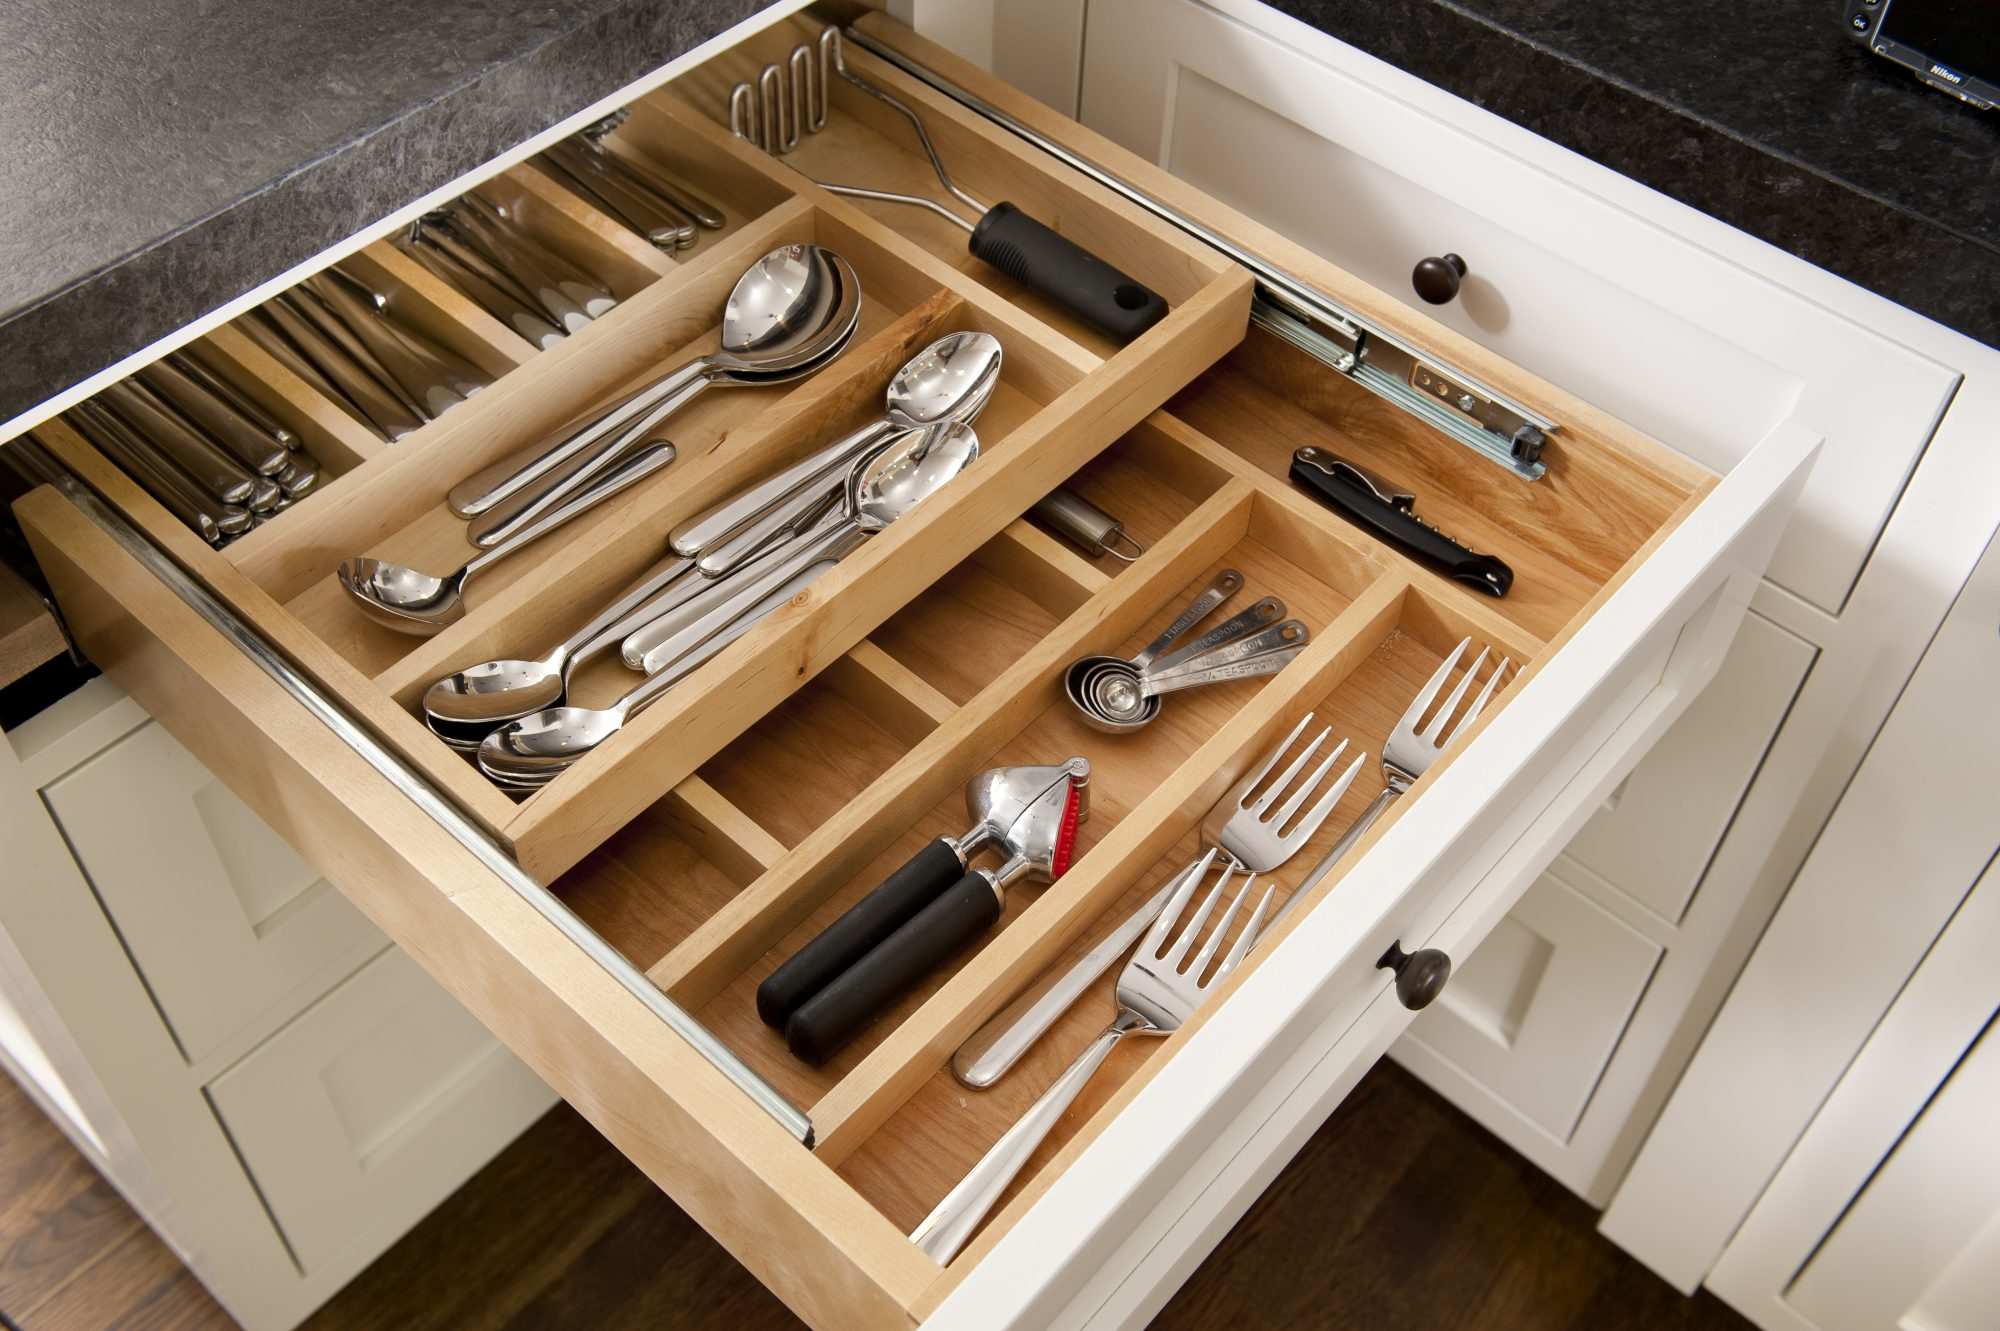 Quarantine Organize kitchen utensil drawer